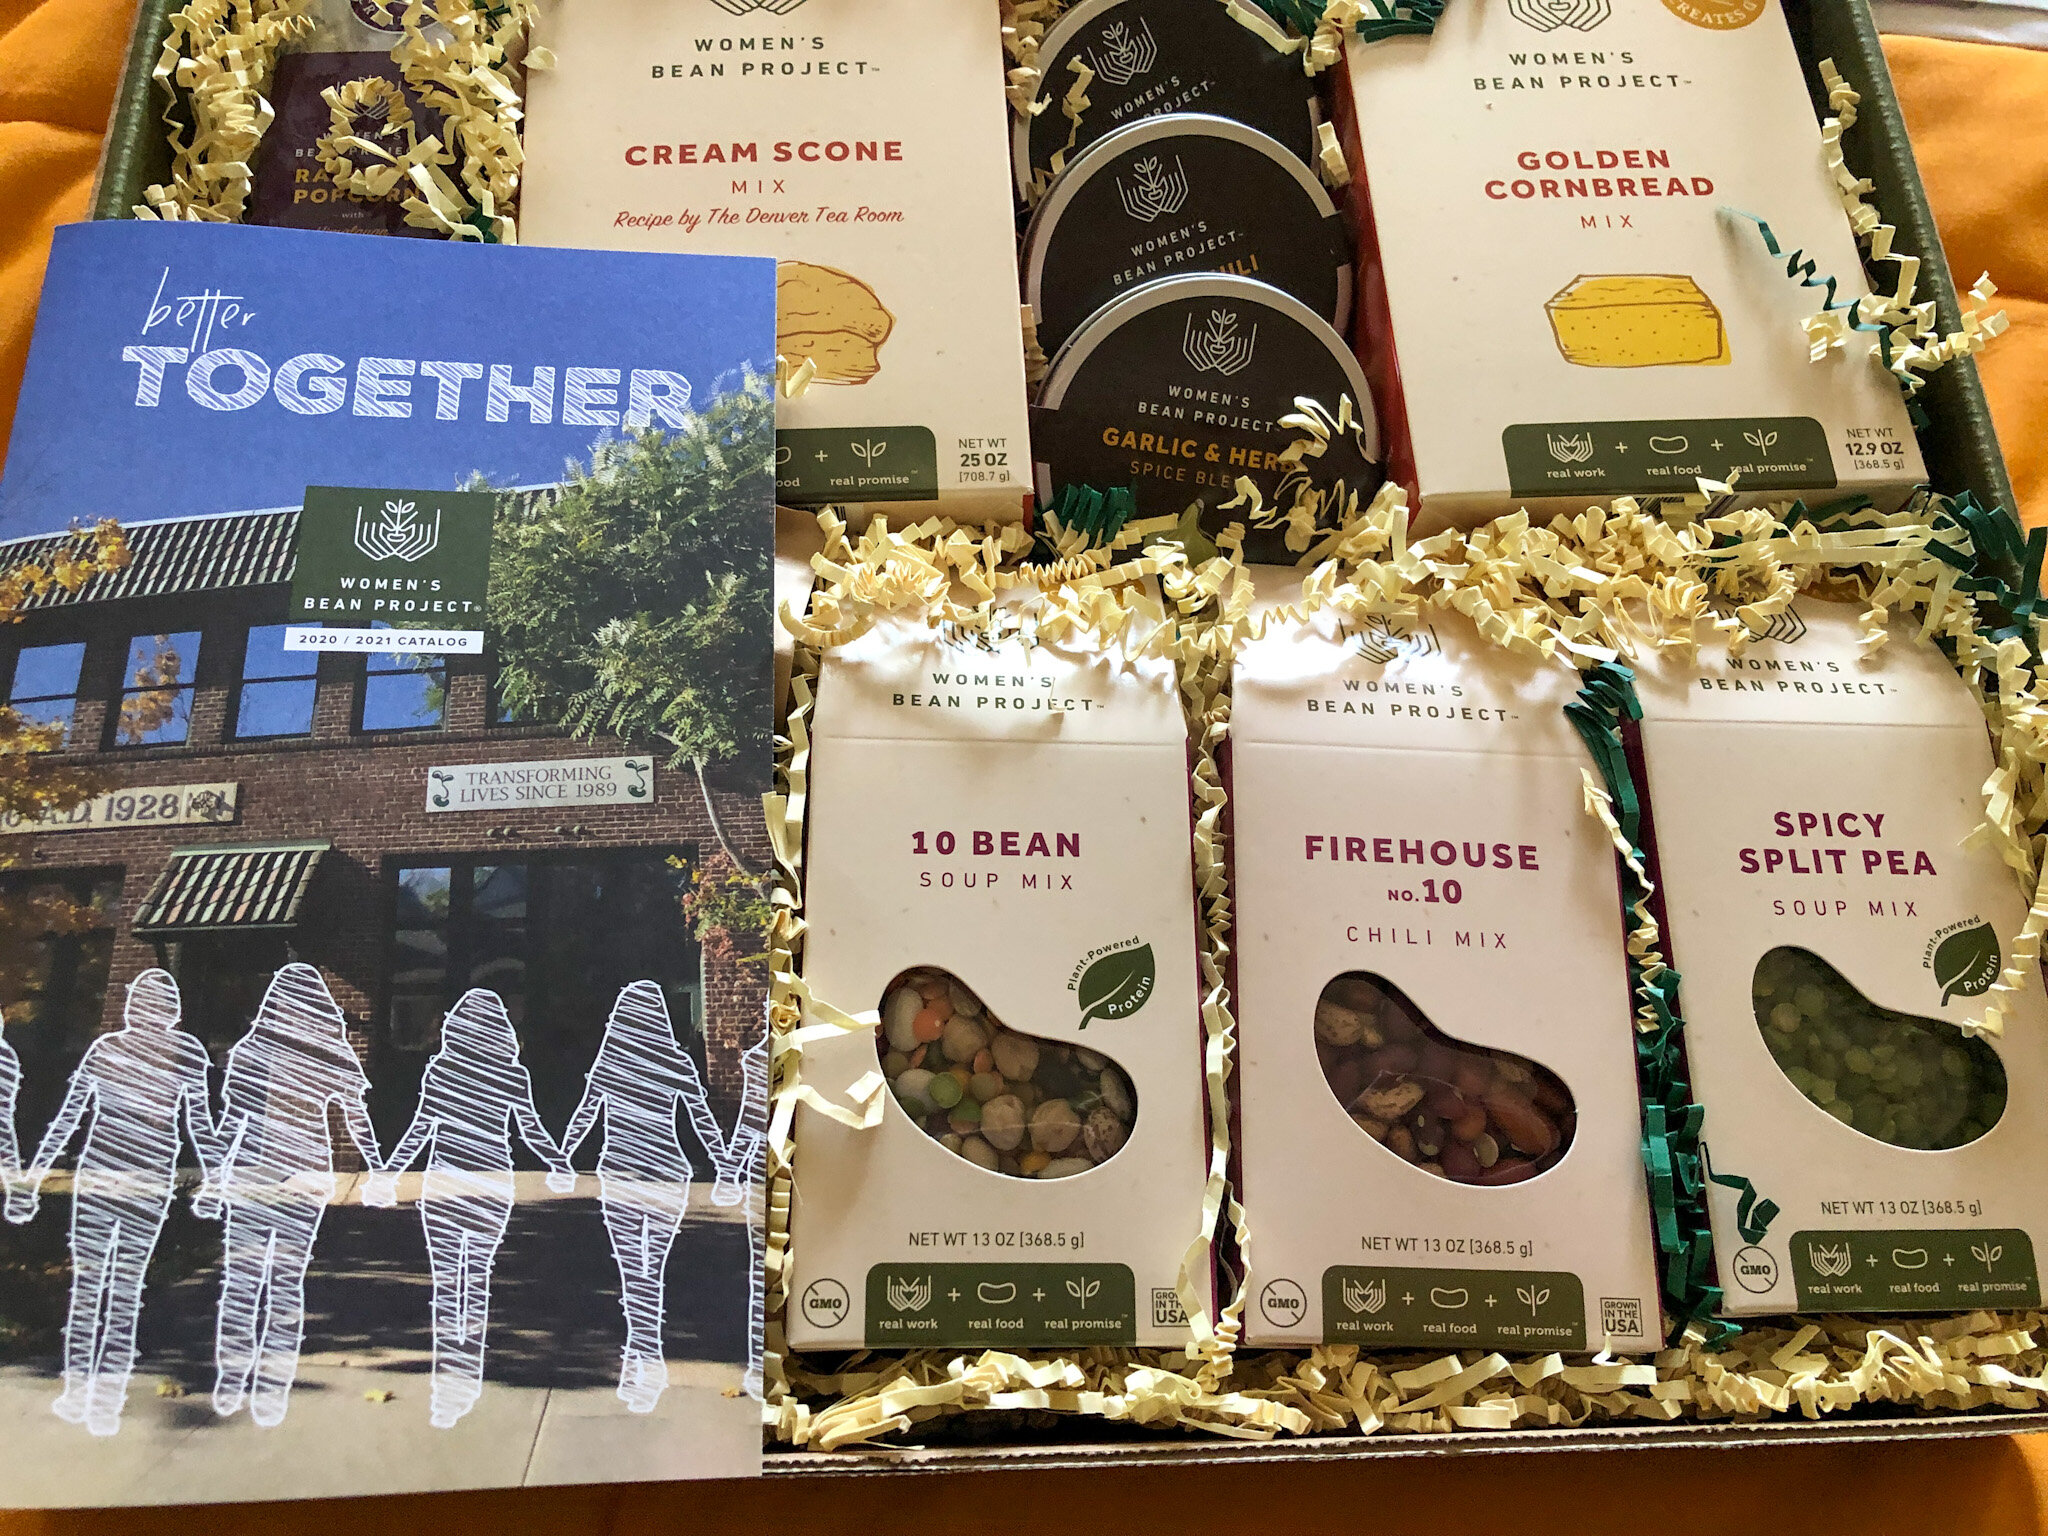 Women's Bean Project Gift Boxes, gifts that makes a difference.